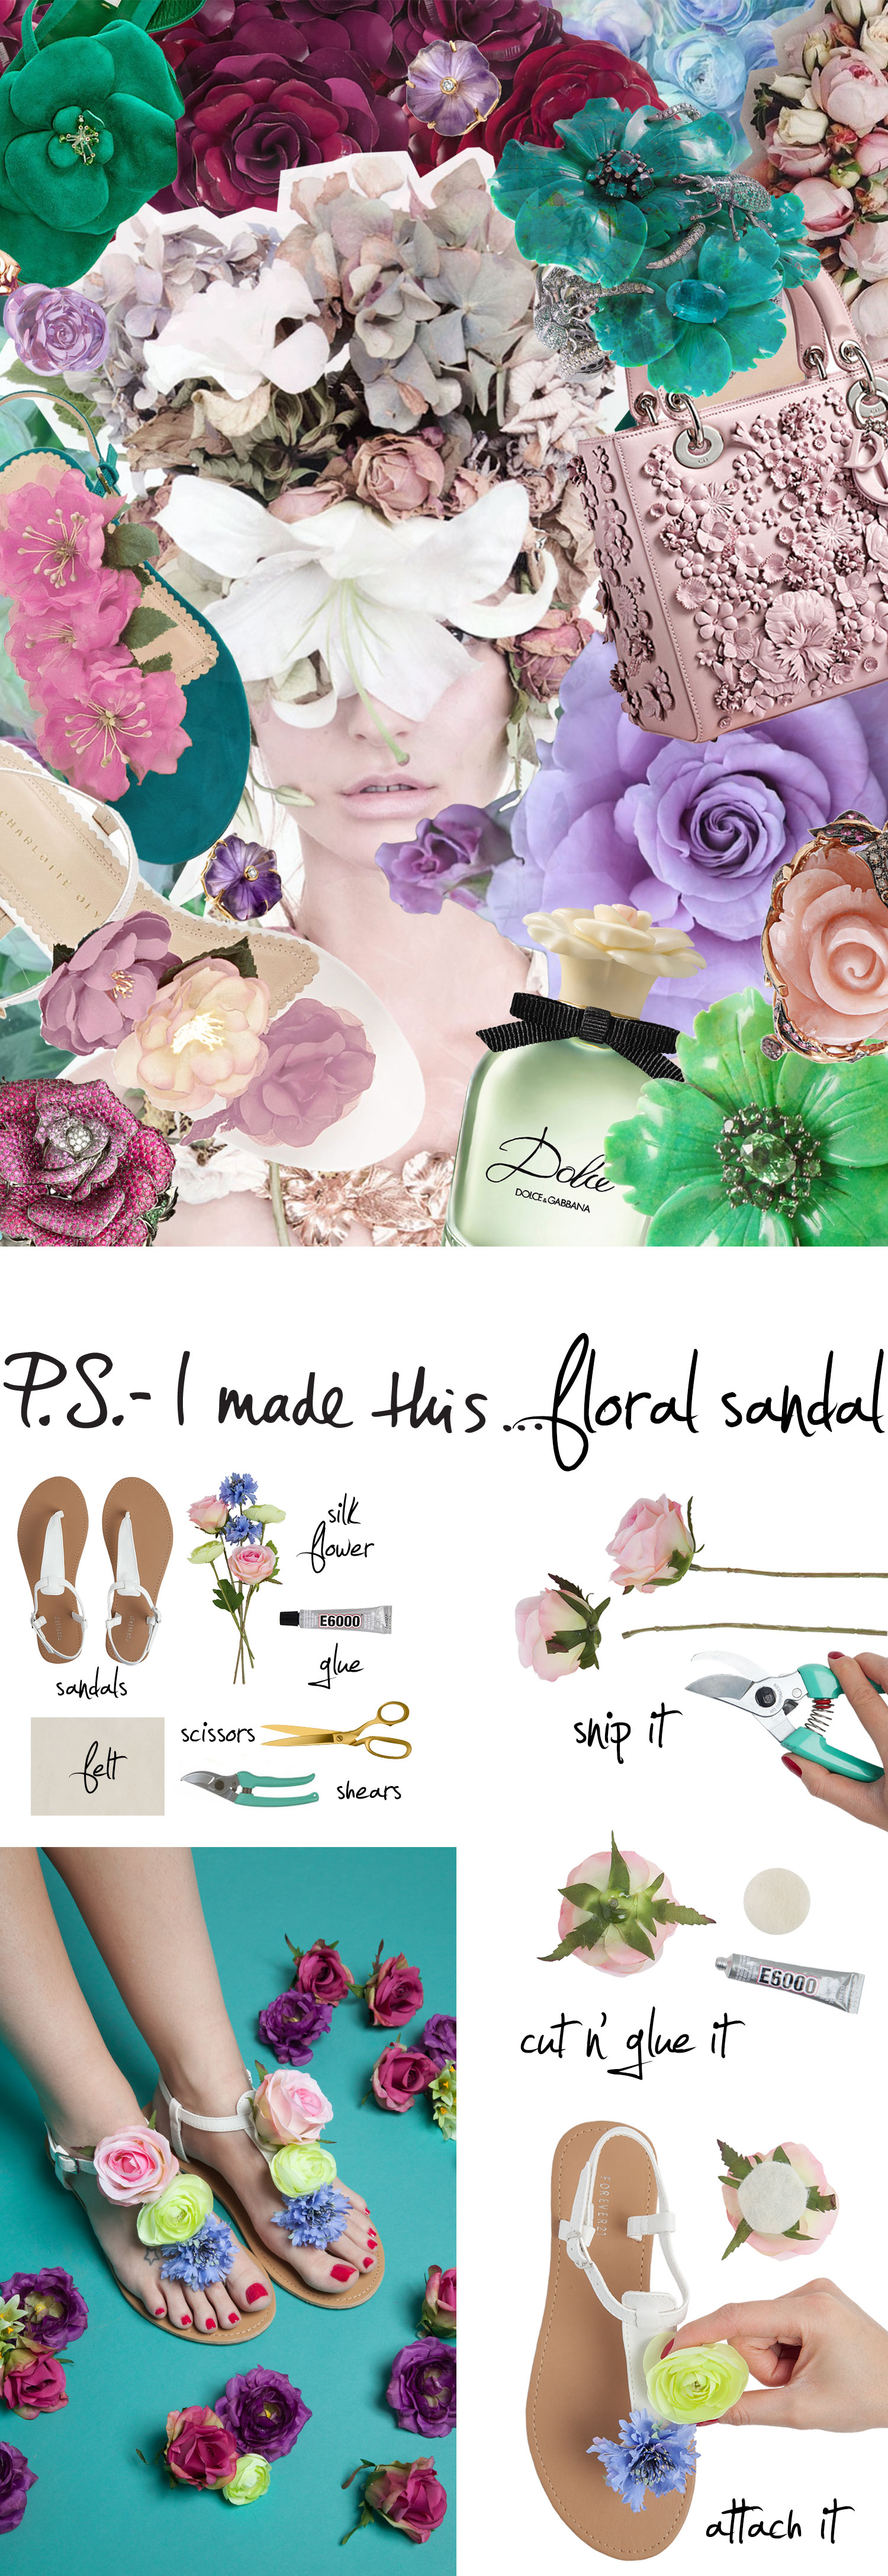 07.09.15_Floral-Sandals-MERGED